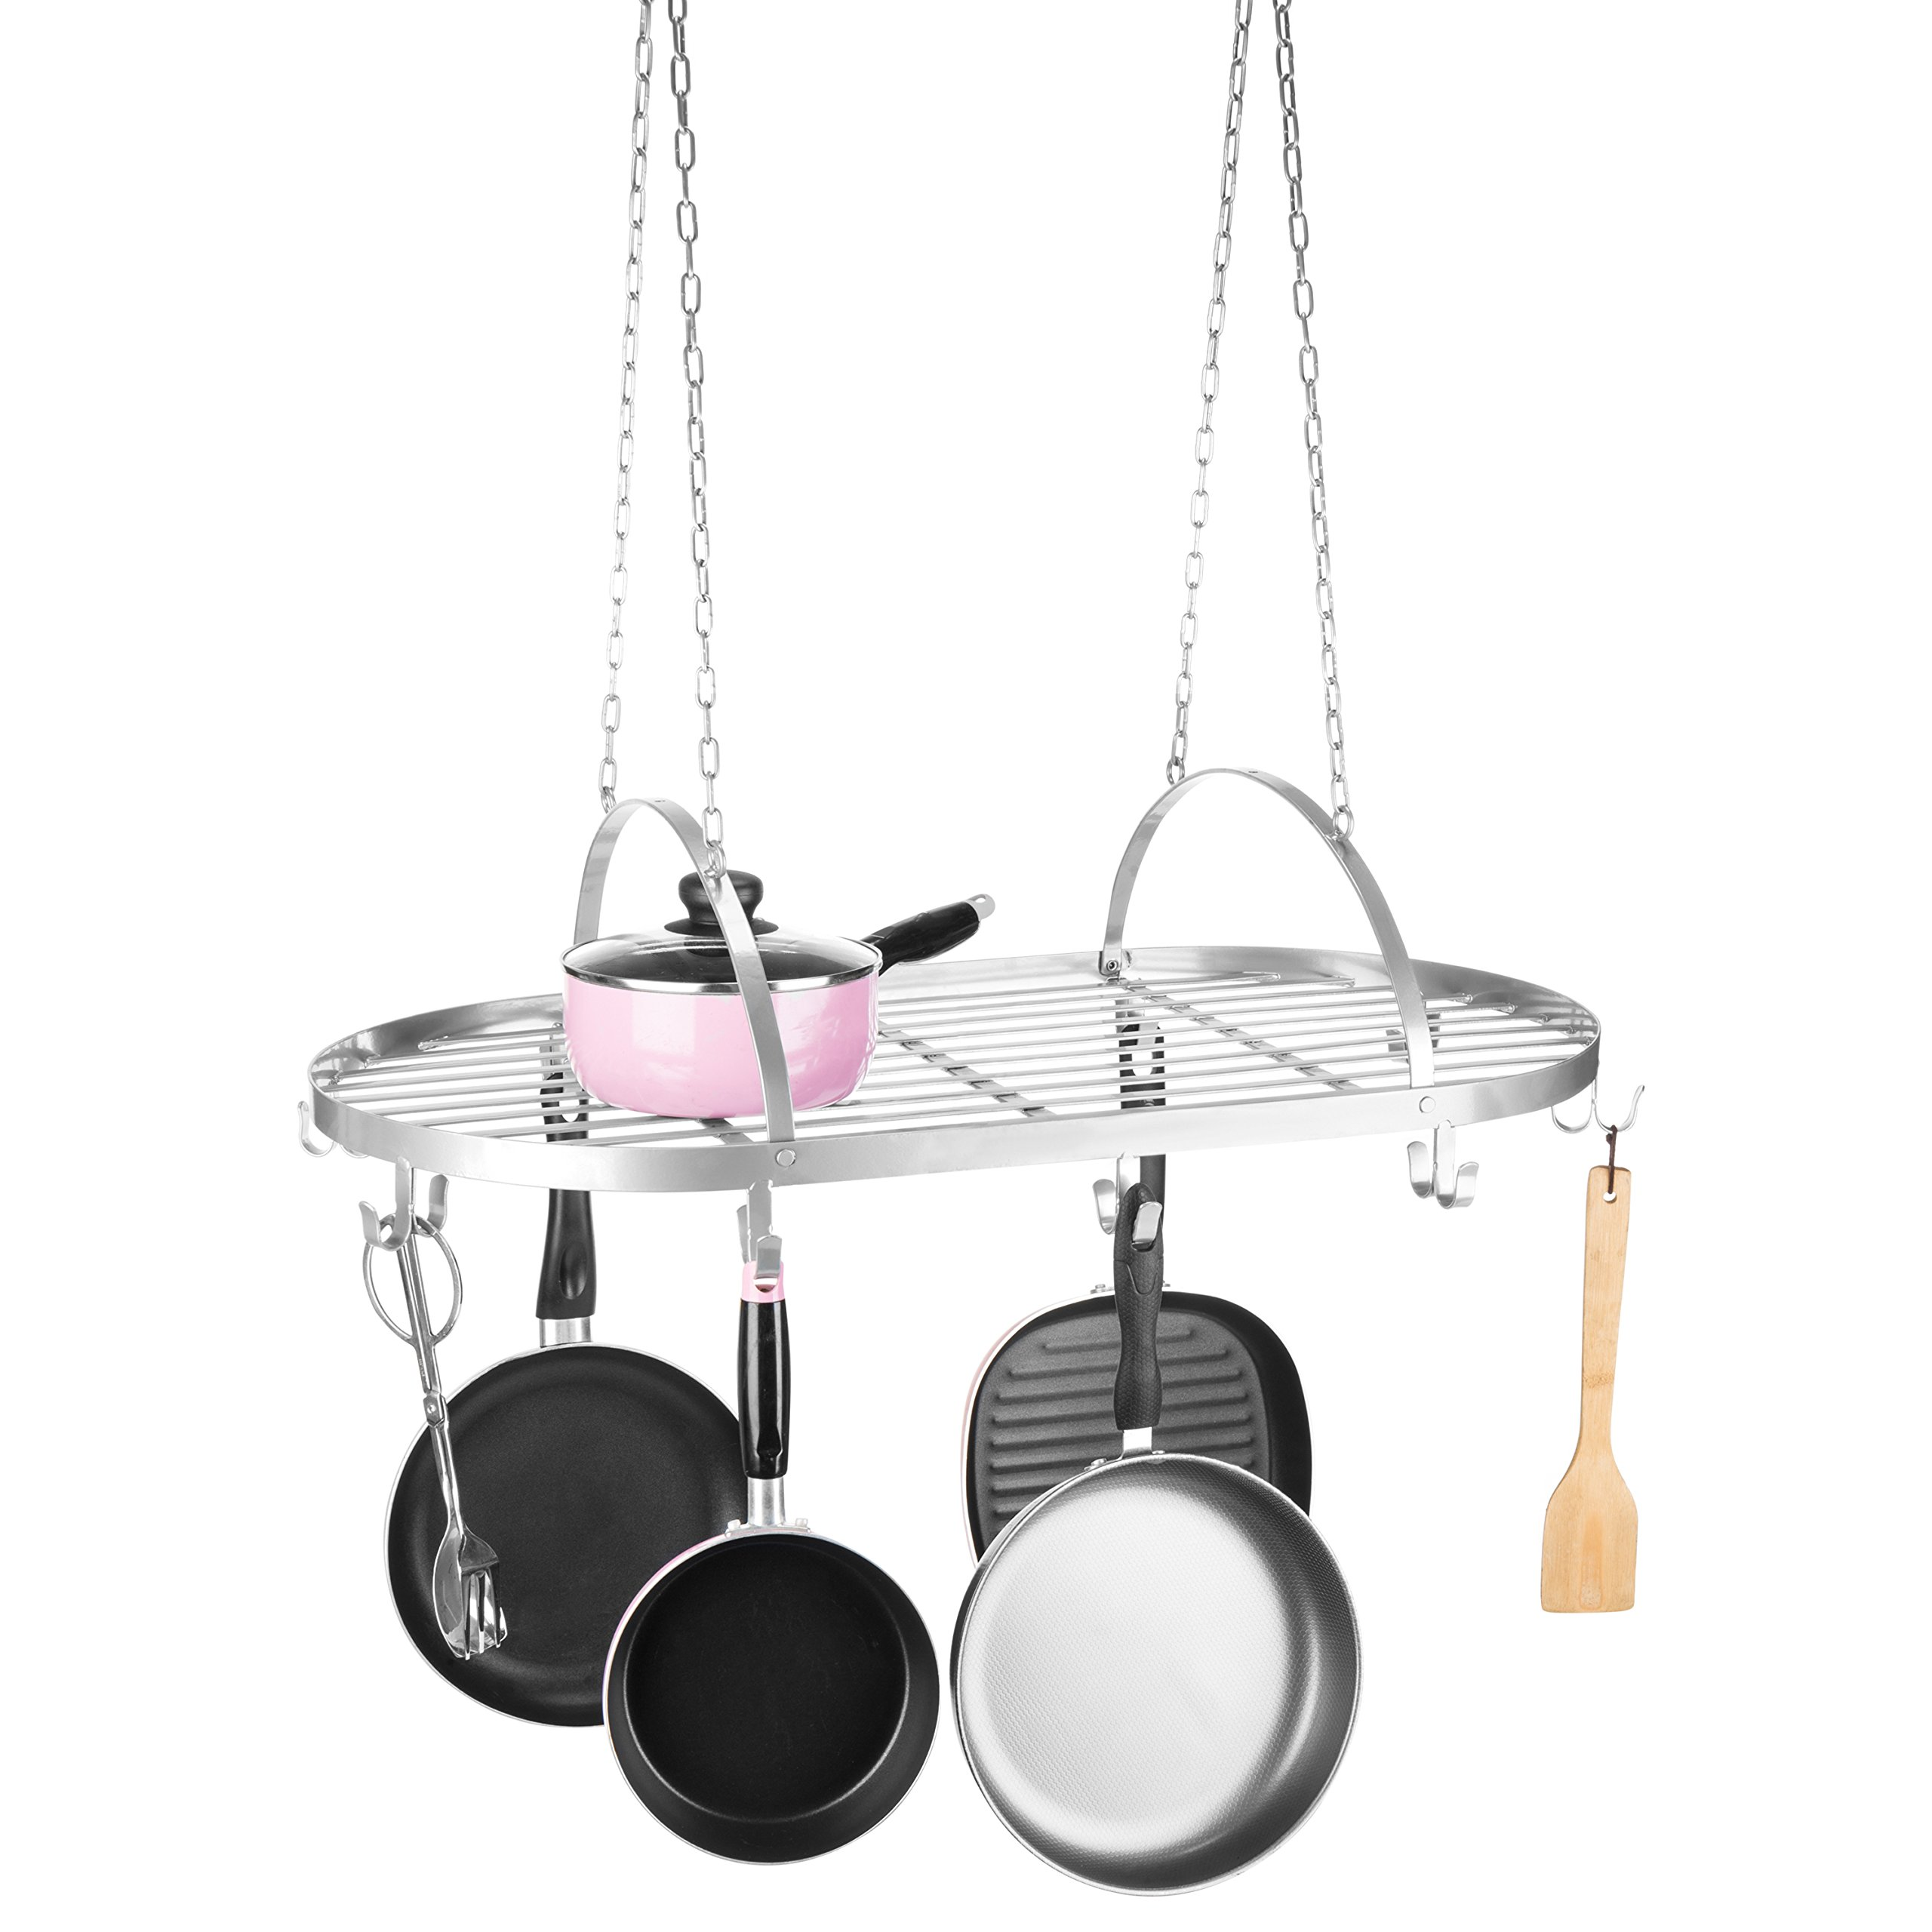 MyGift Silver Scrollwork Metal Ceiling-Mounted Hanging Pot Rack by MyGift